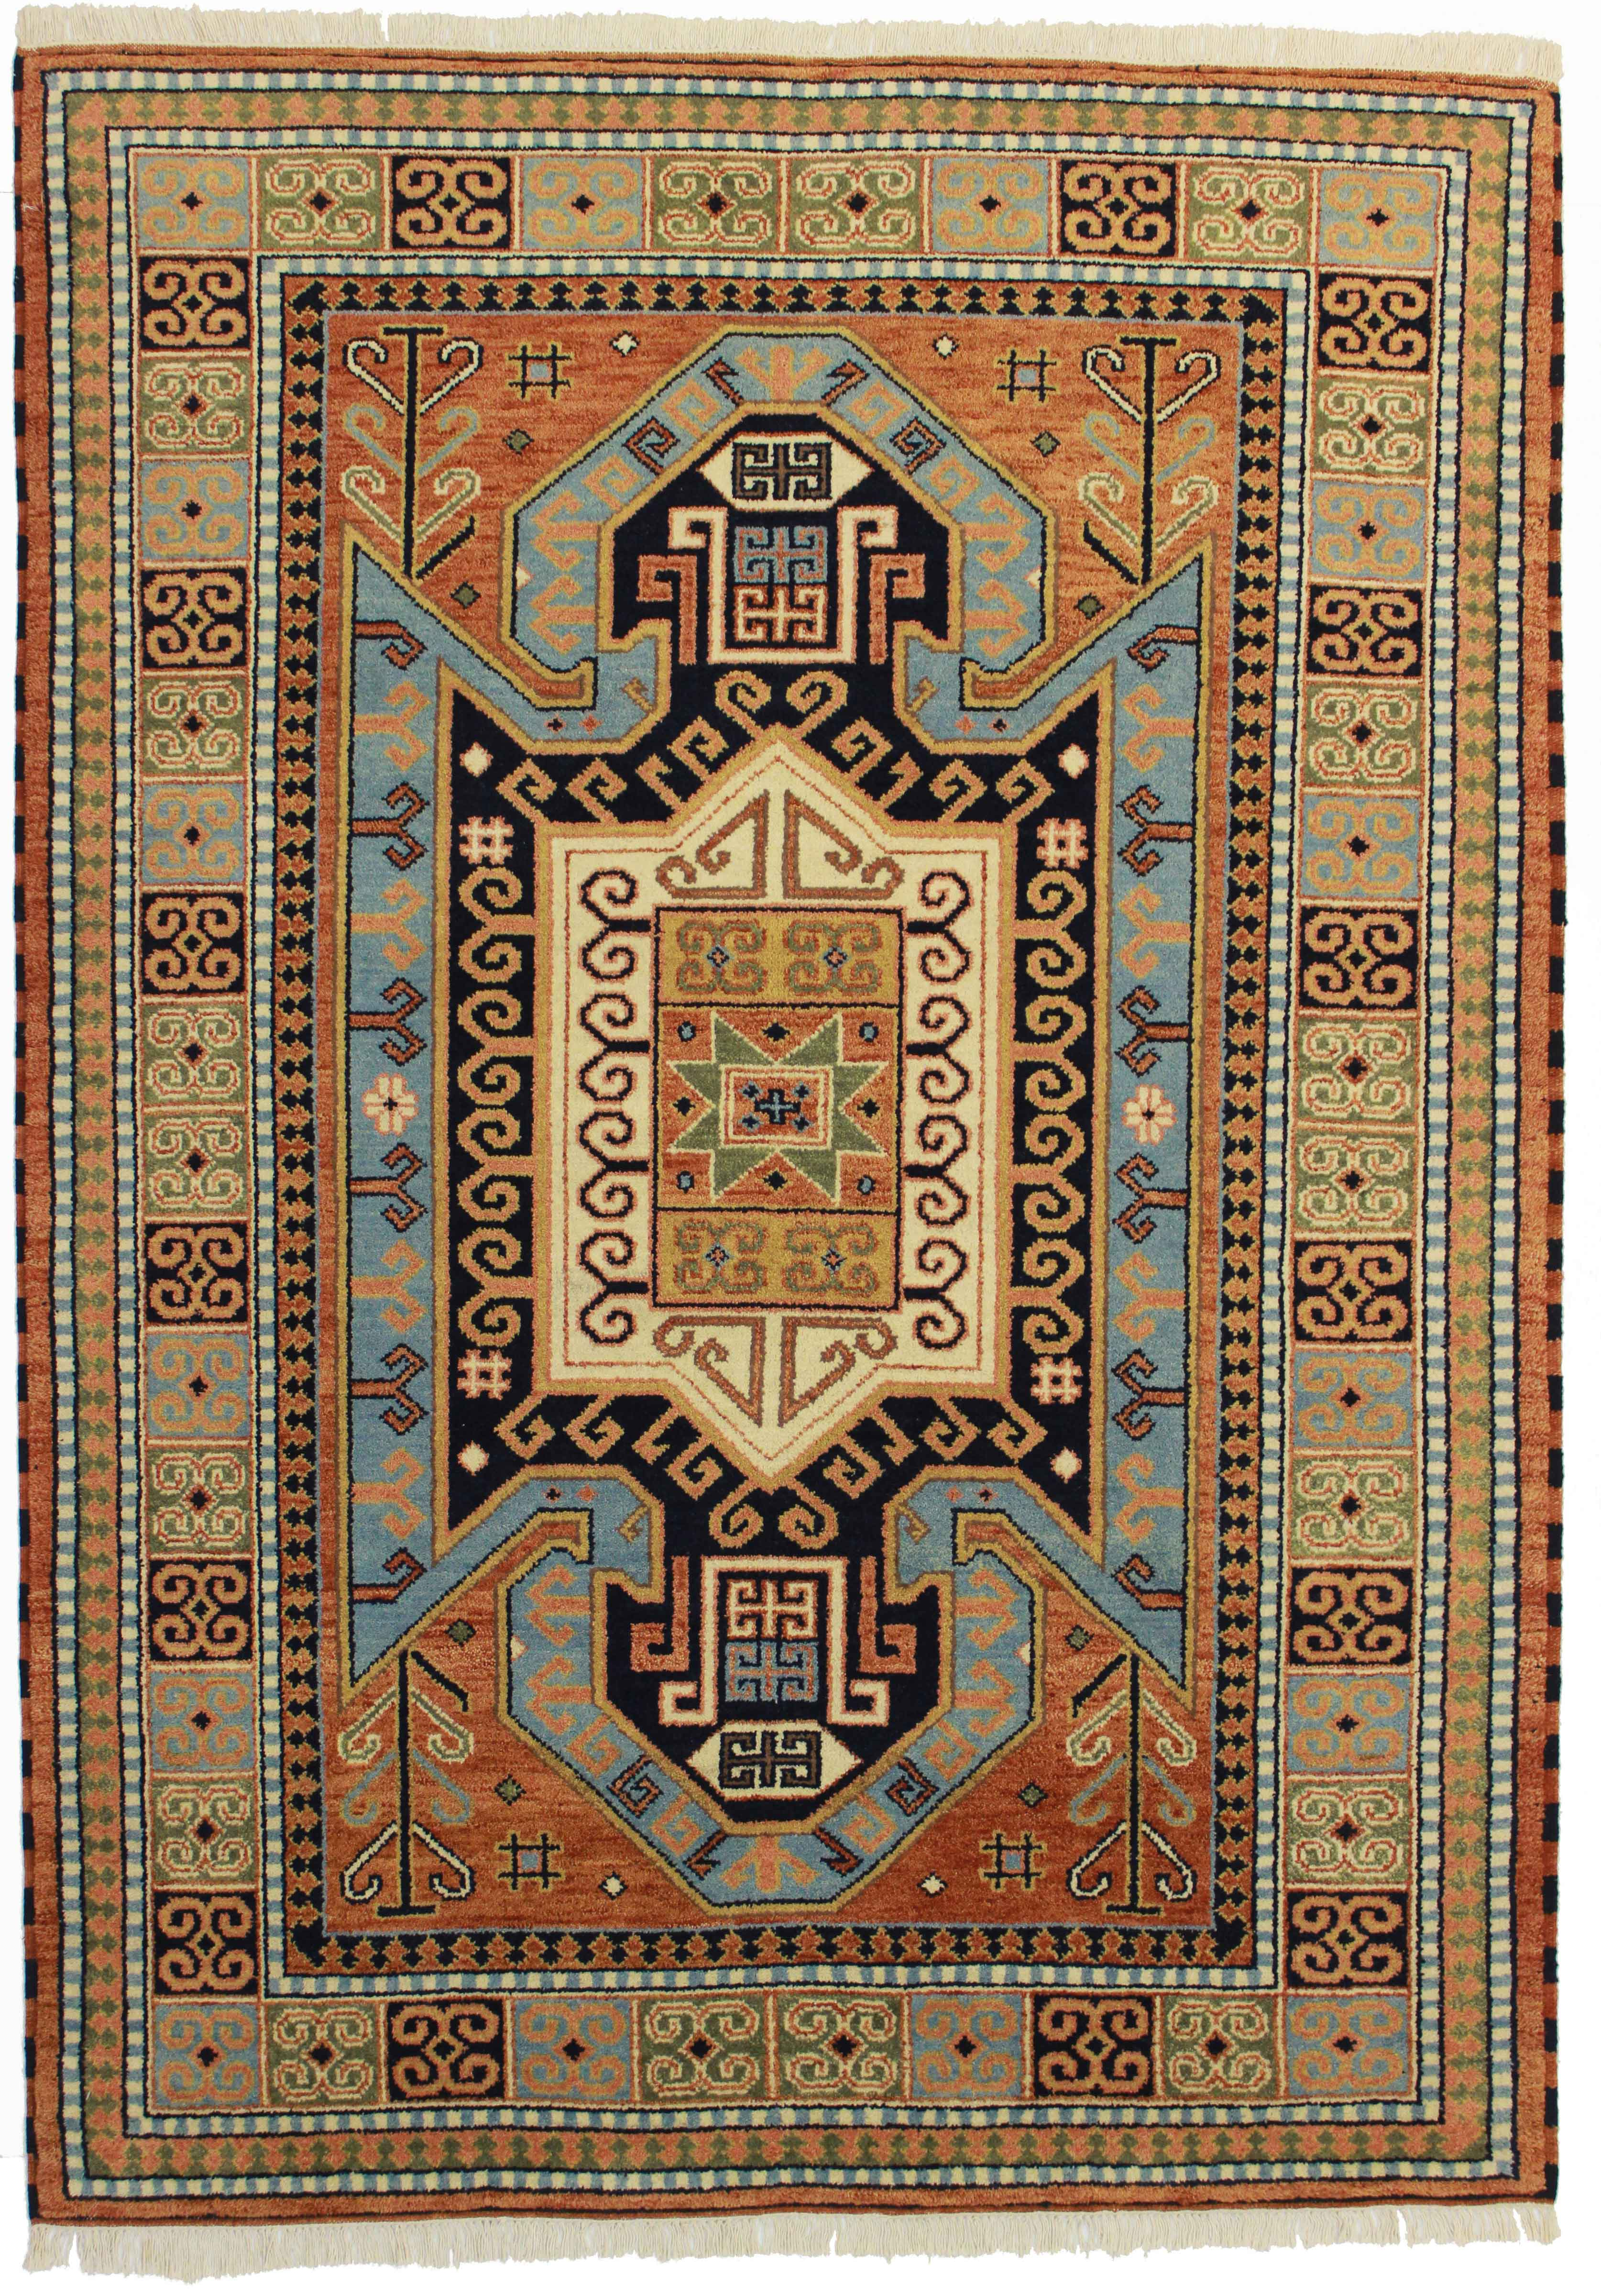 6 X 8 Vintage Transitional Wool Rug 13174 Exclusive Oriental Rugs